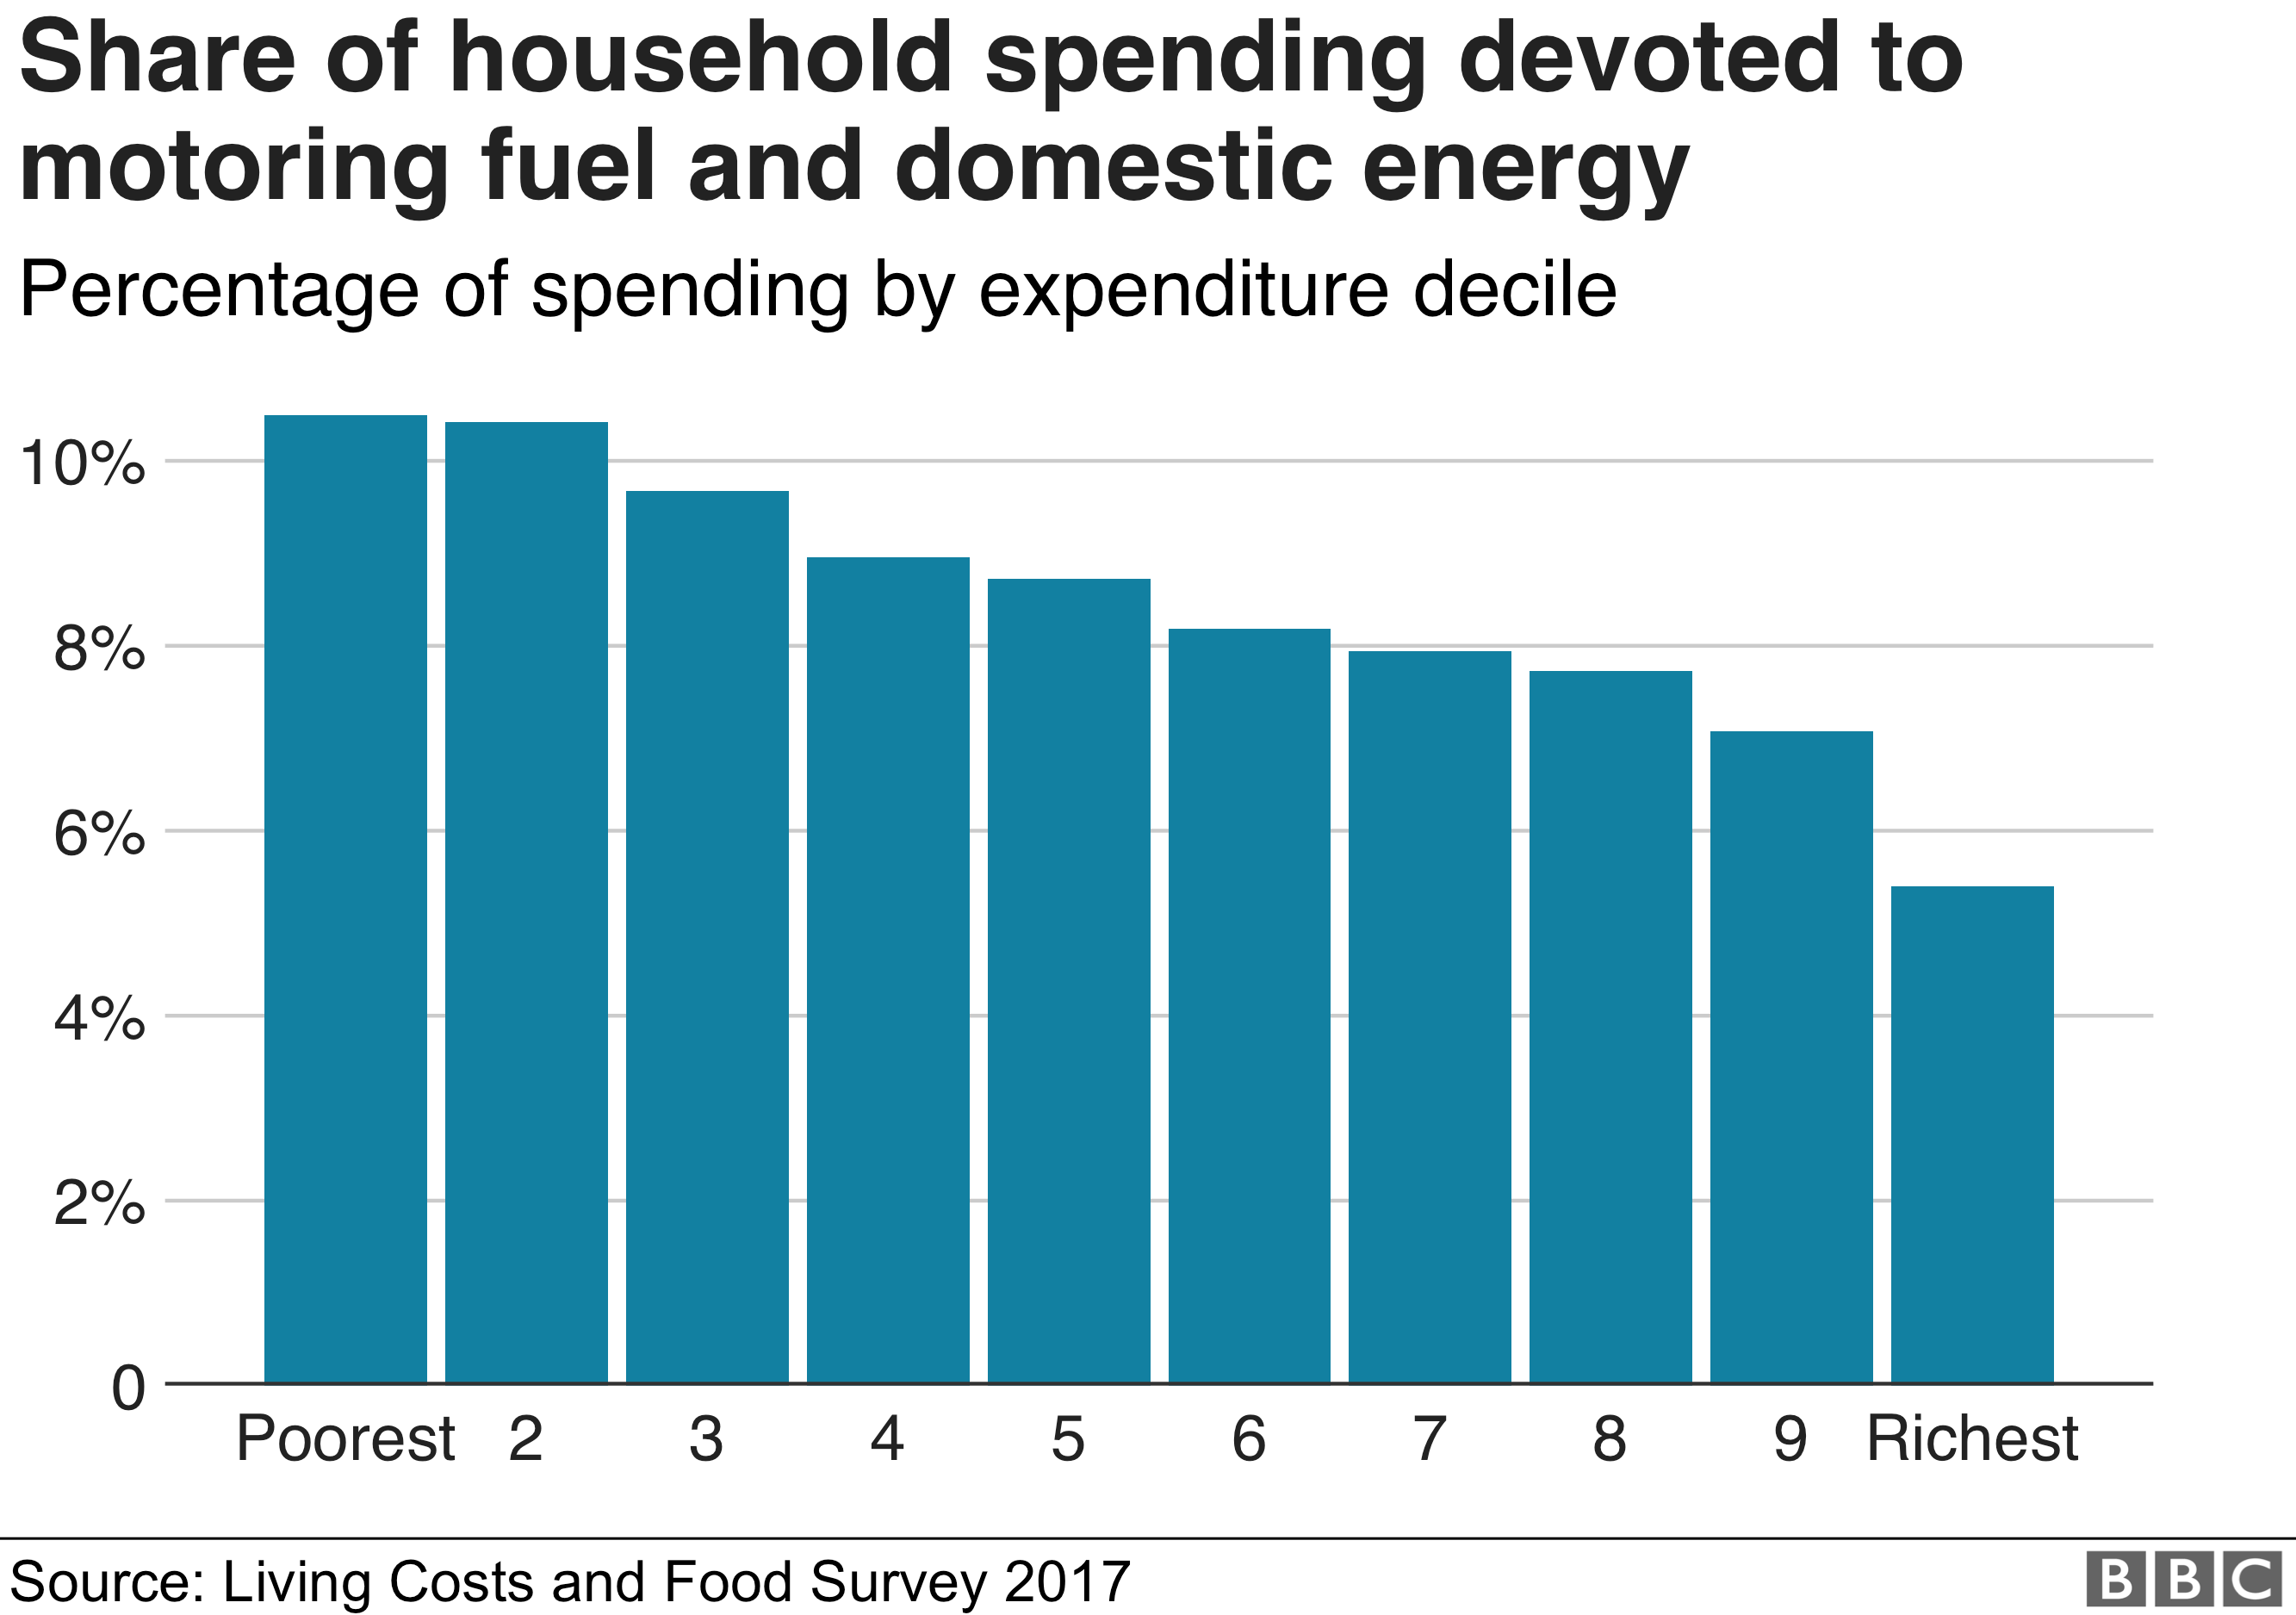 Share of household spending devoted to motoring fuel and domestic energy